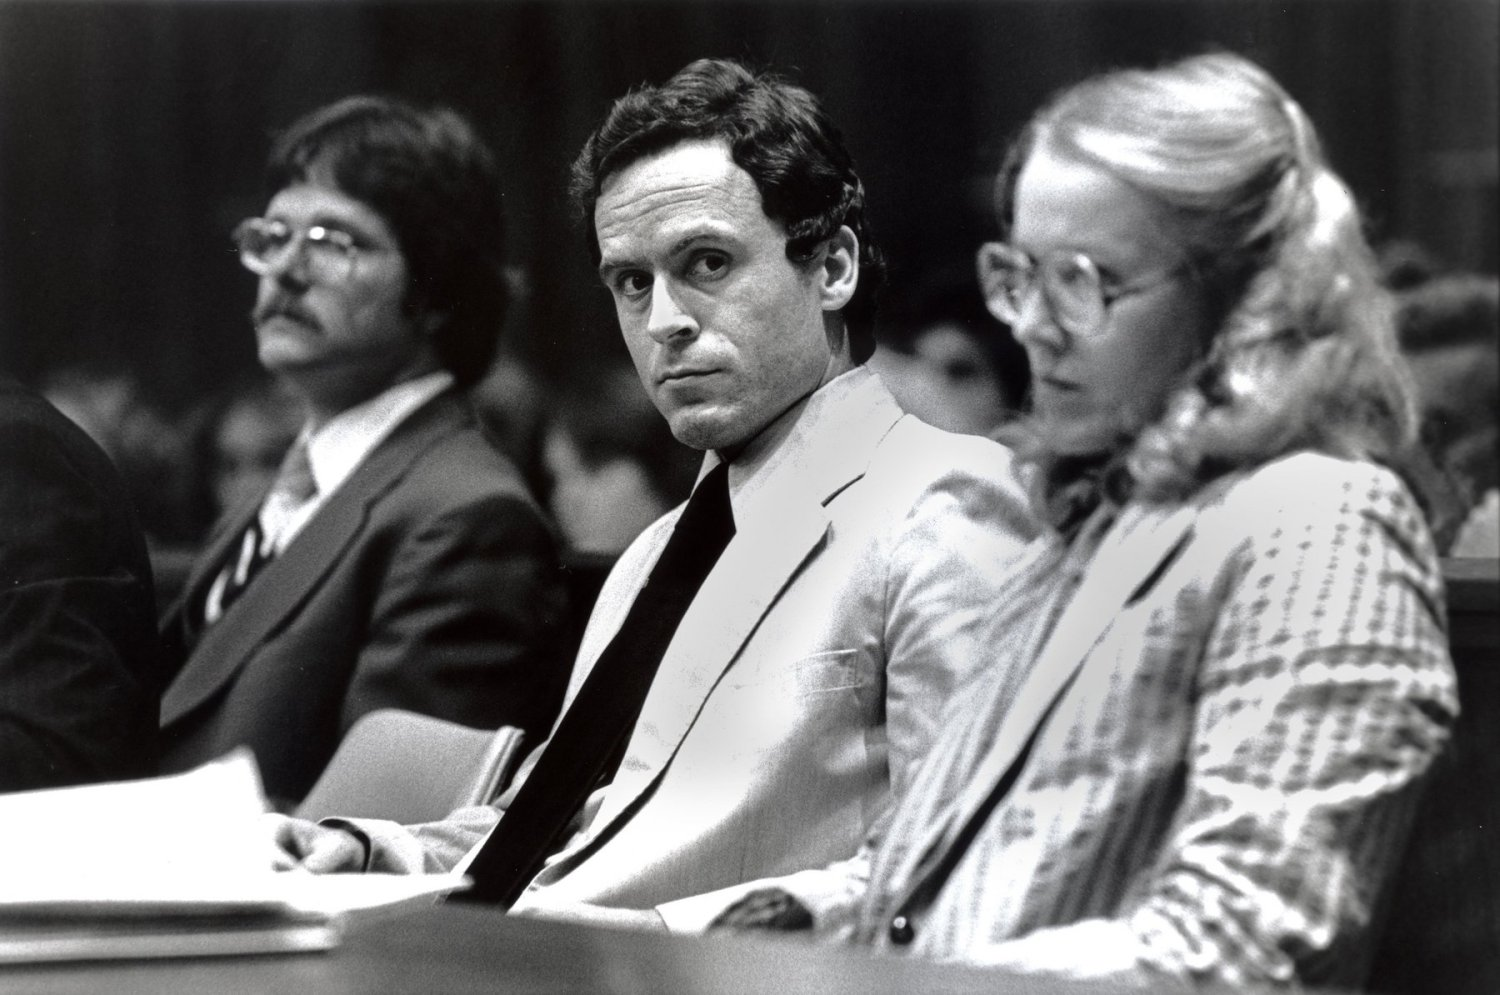 Ted Bundy's Execution: How Death Gave The Monstrous Serial Killer Immortality